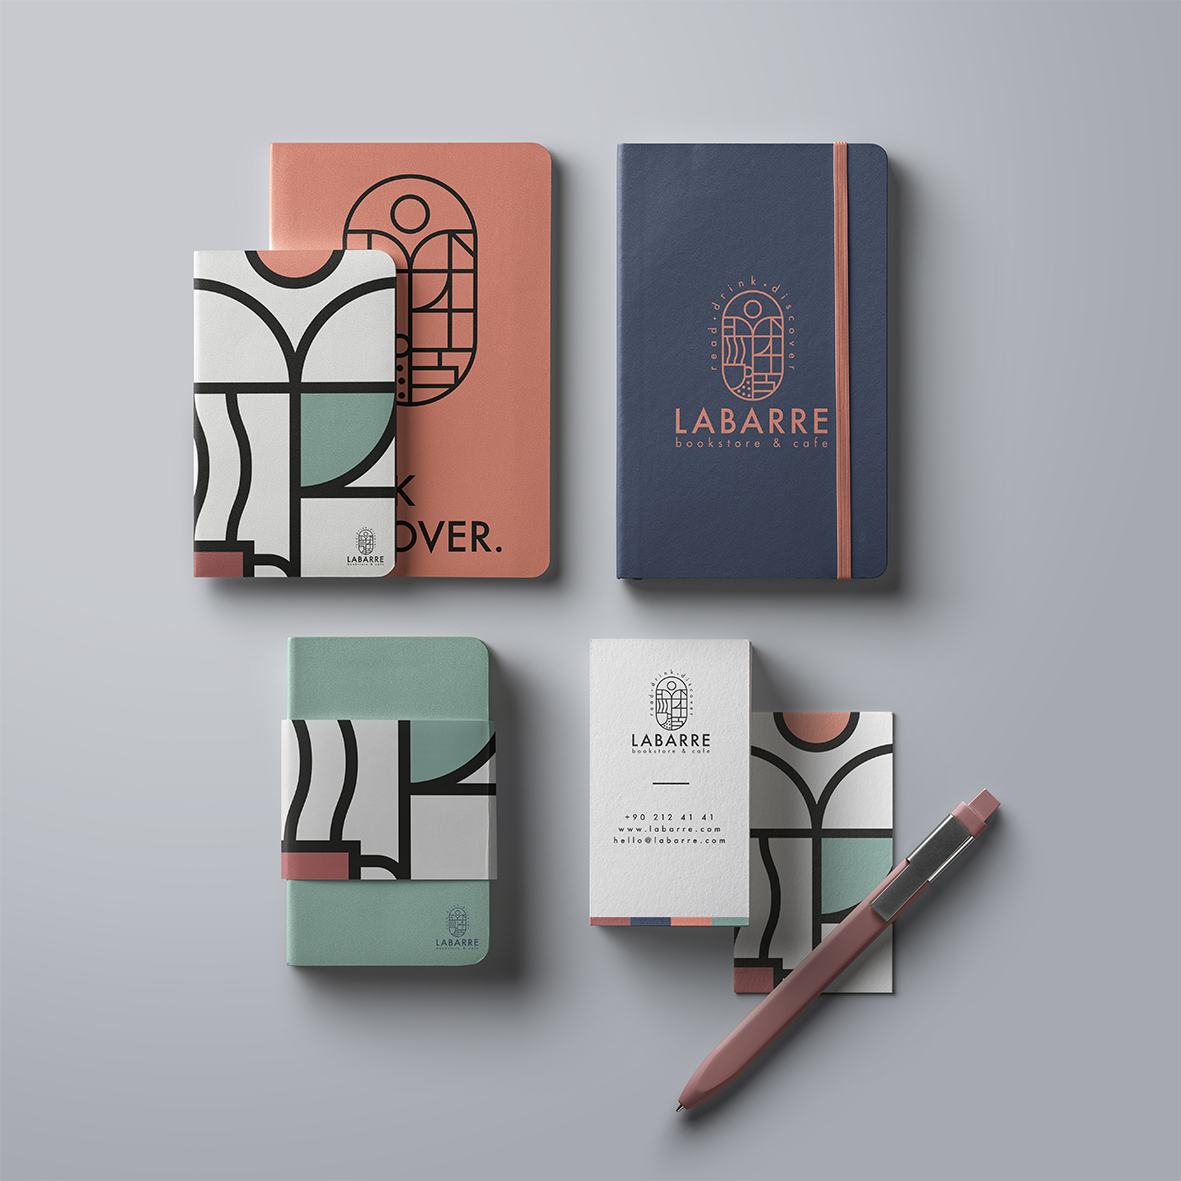 labarre_bookstore_cafe_identity_note_notebook_package